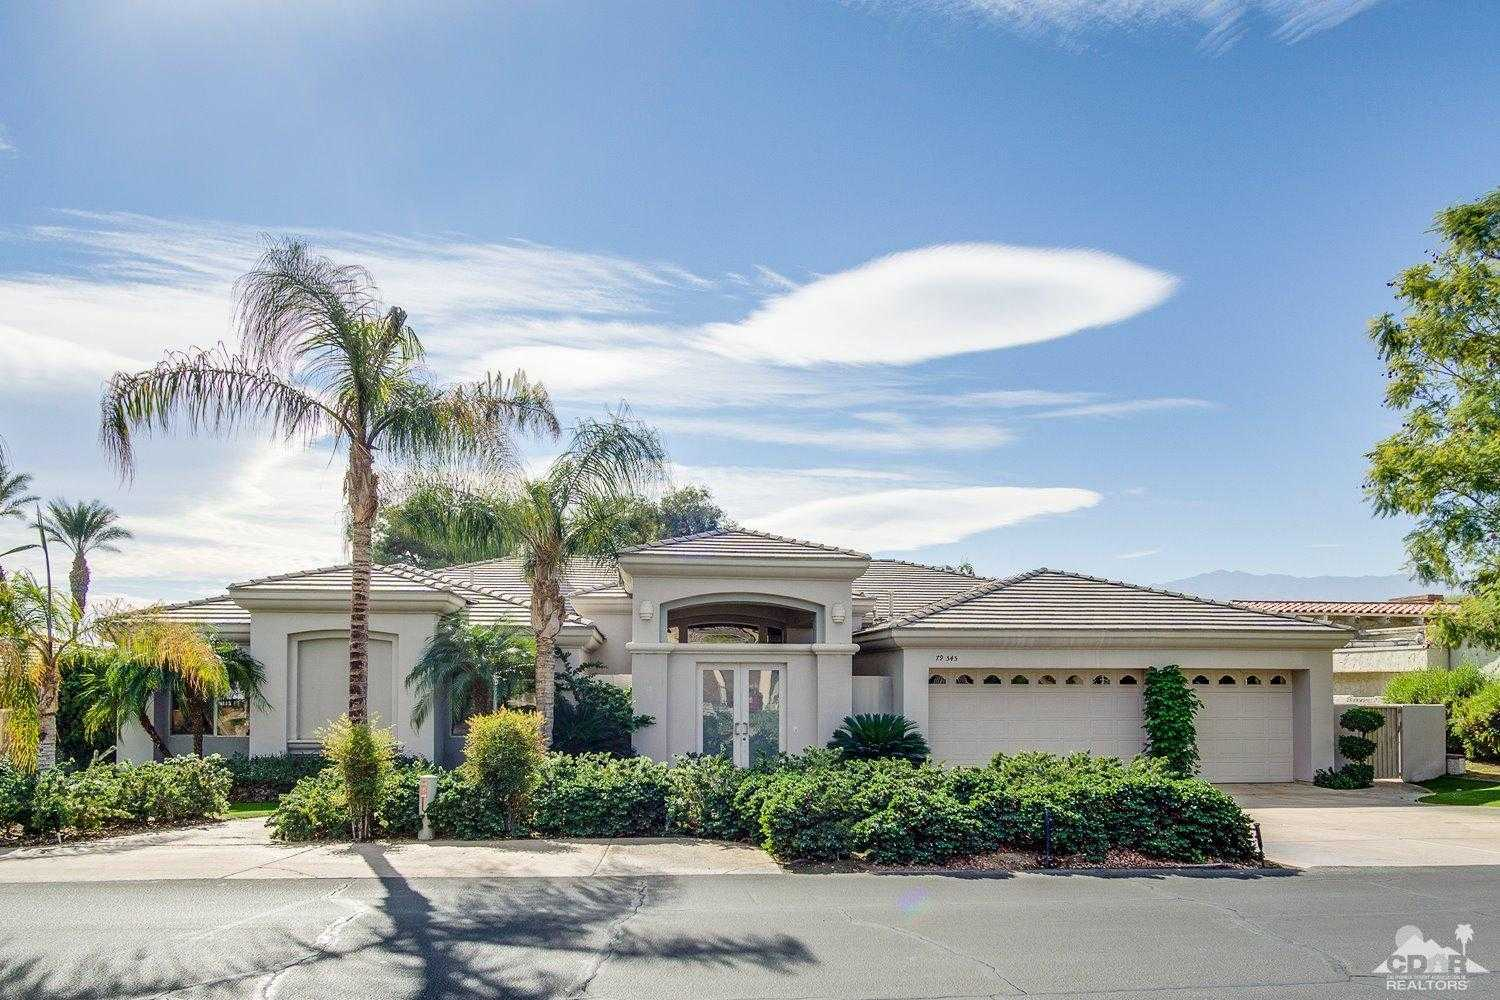 $962,000 - 3Br/4Ba -  for Sale in Bdcc Country, Bermuda Dunes